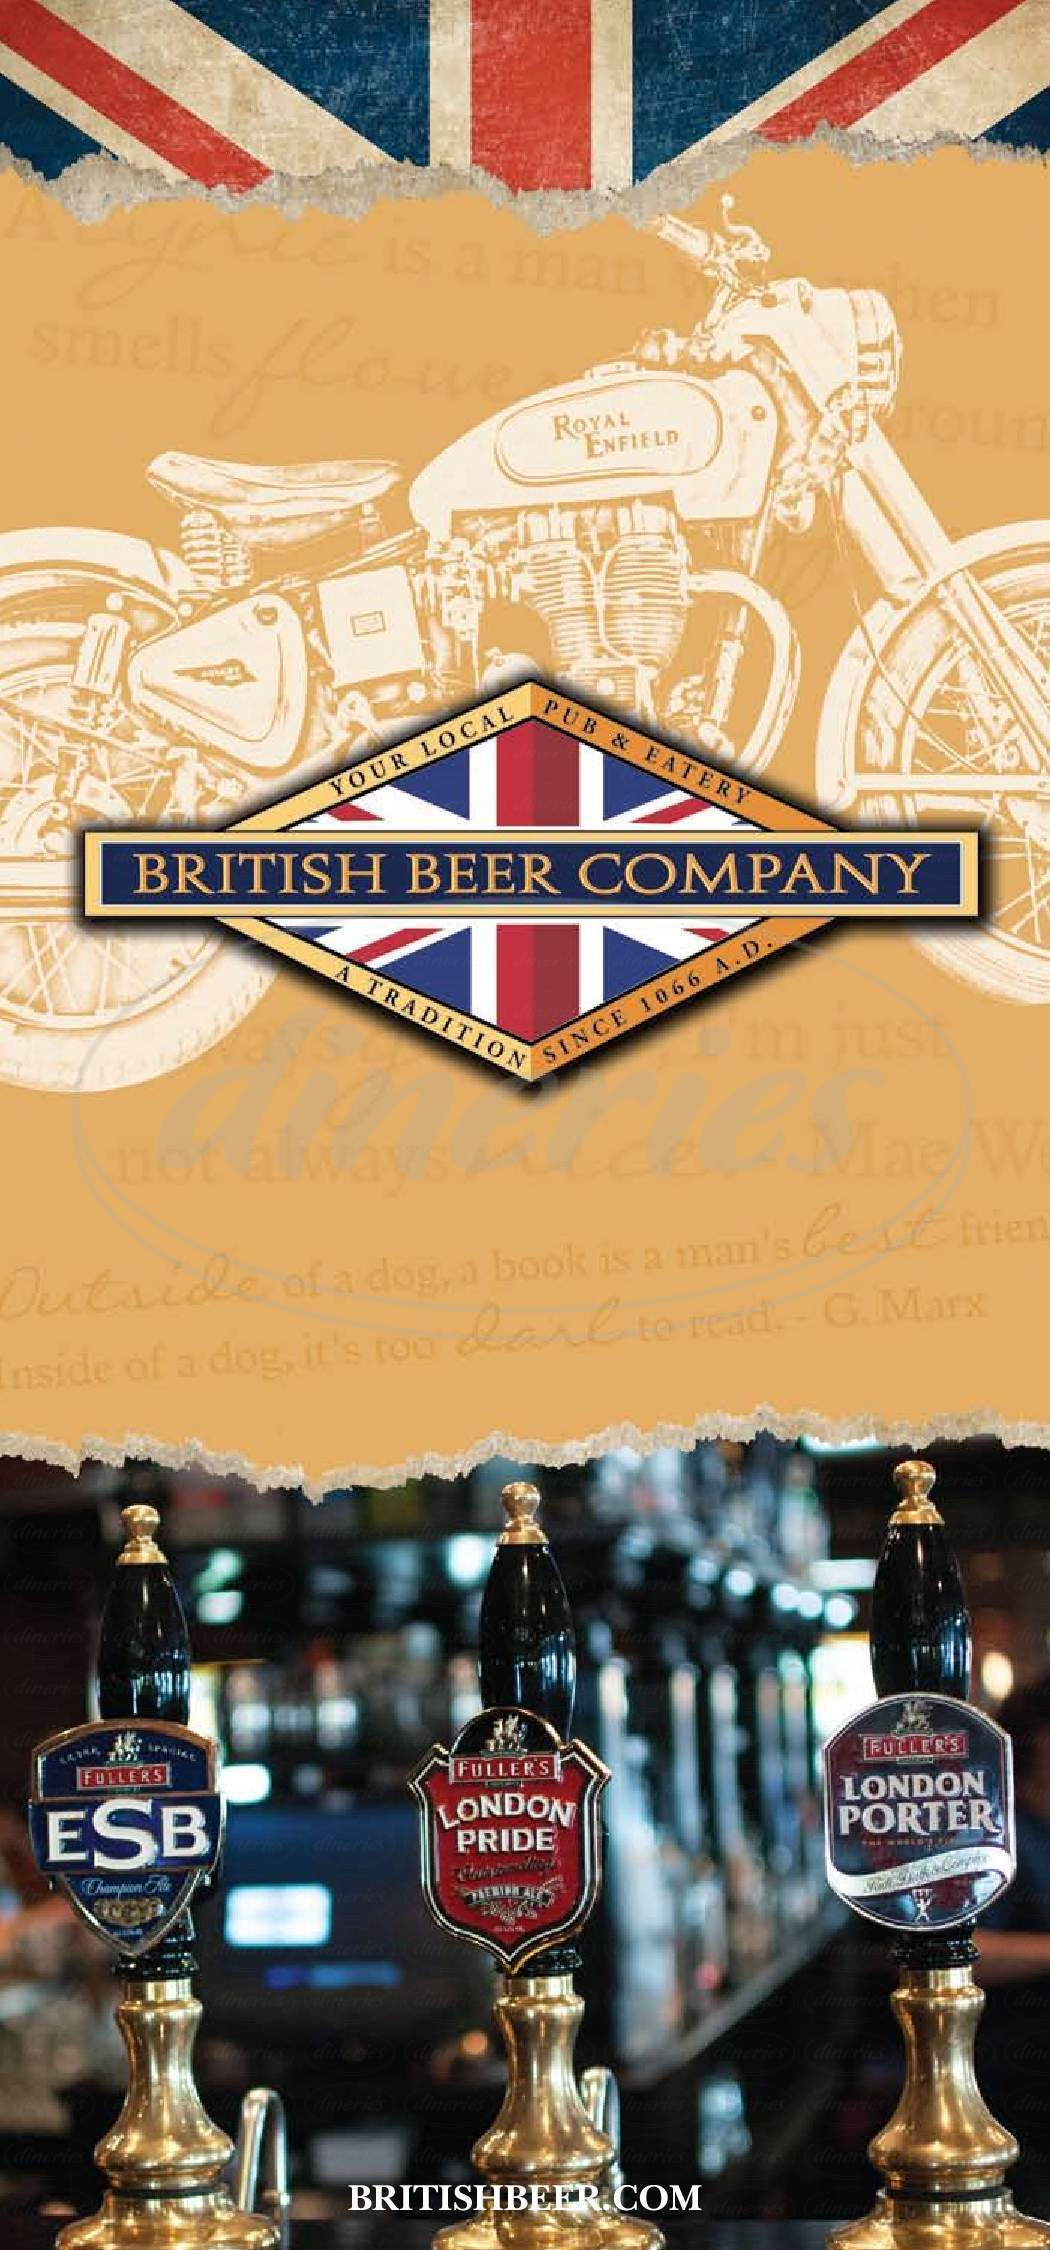 menu for British Beer Company